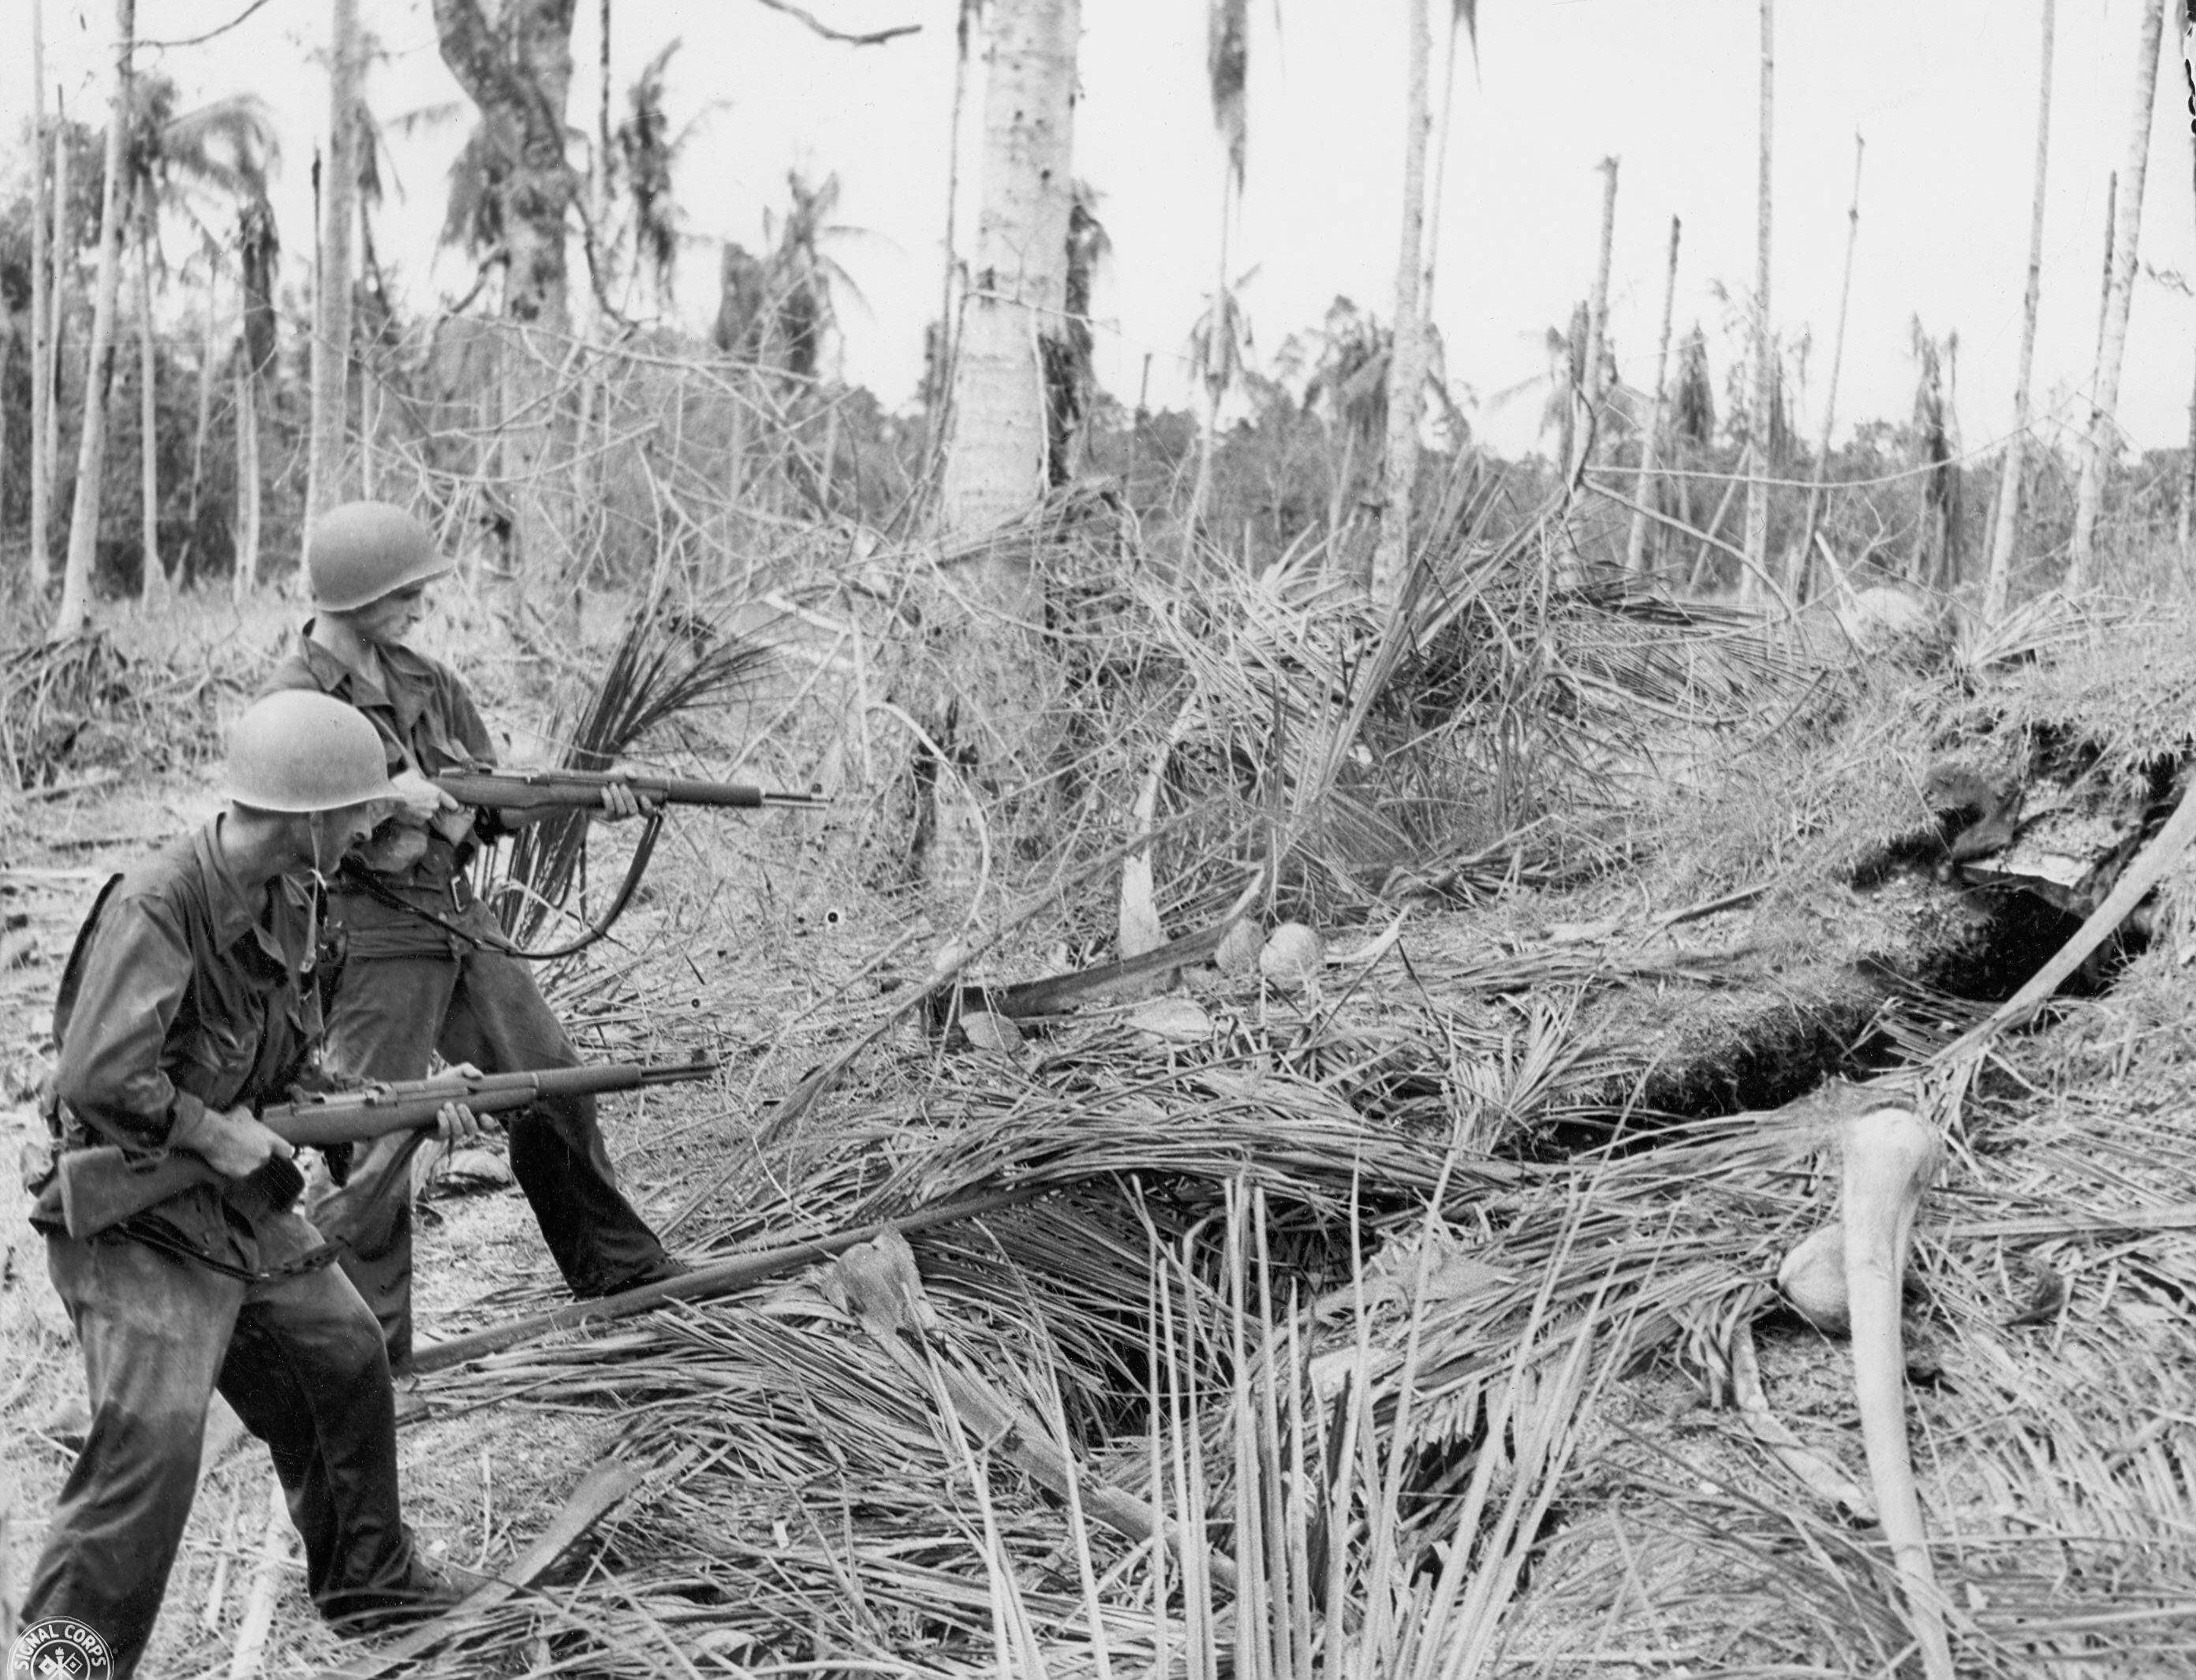 March 1943: Two GIs approach a Jap dugout in Boone, New Guinea and pepper its entrance with preparatory fire from their M1 Garand rifles. Dugouts were usually dealt with with flame throwers and grenades.